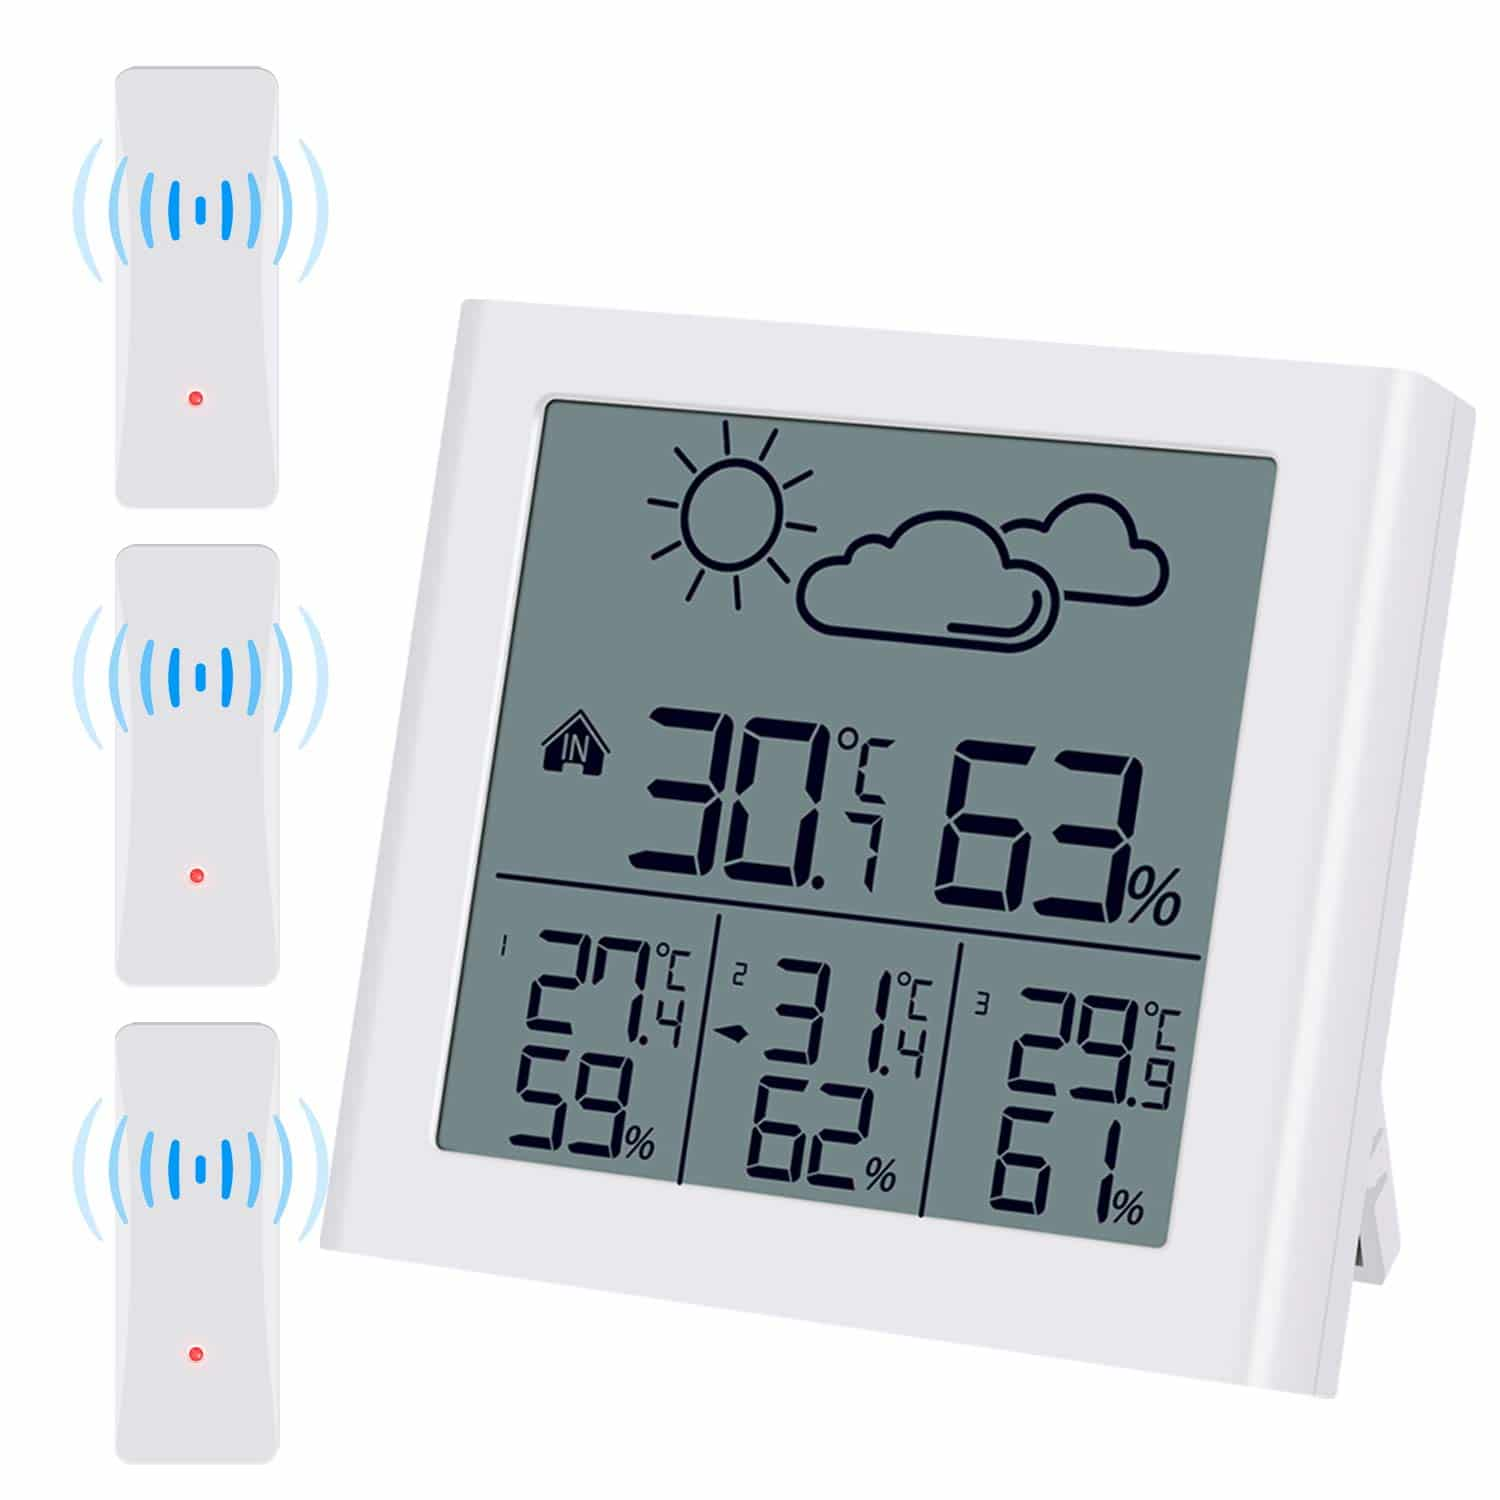 (Upgraded) Brifit Indoor Outdoor Thermometer with 3 Wireless Sensors